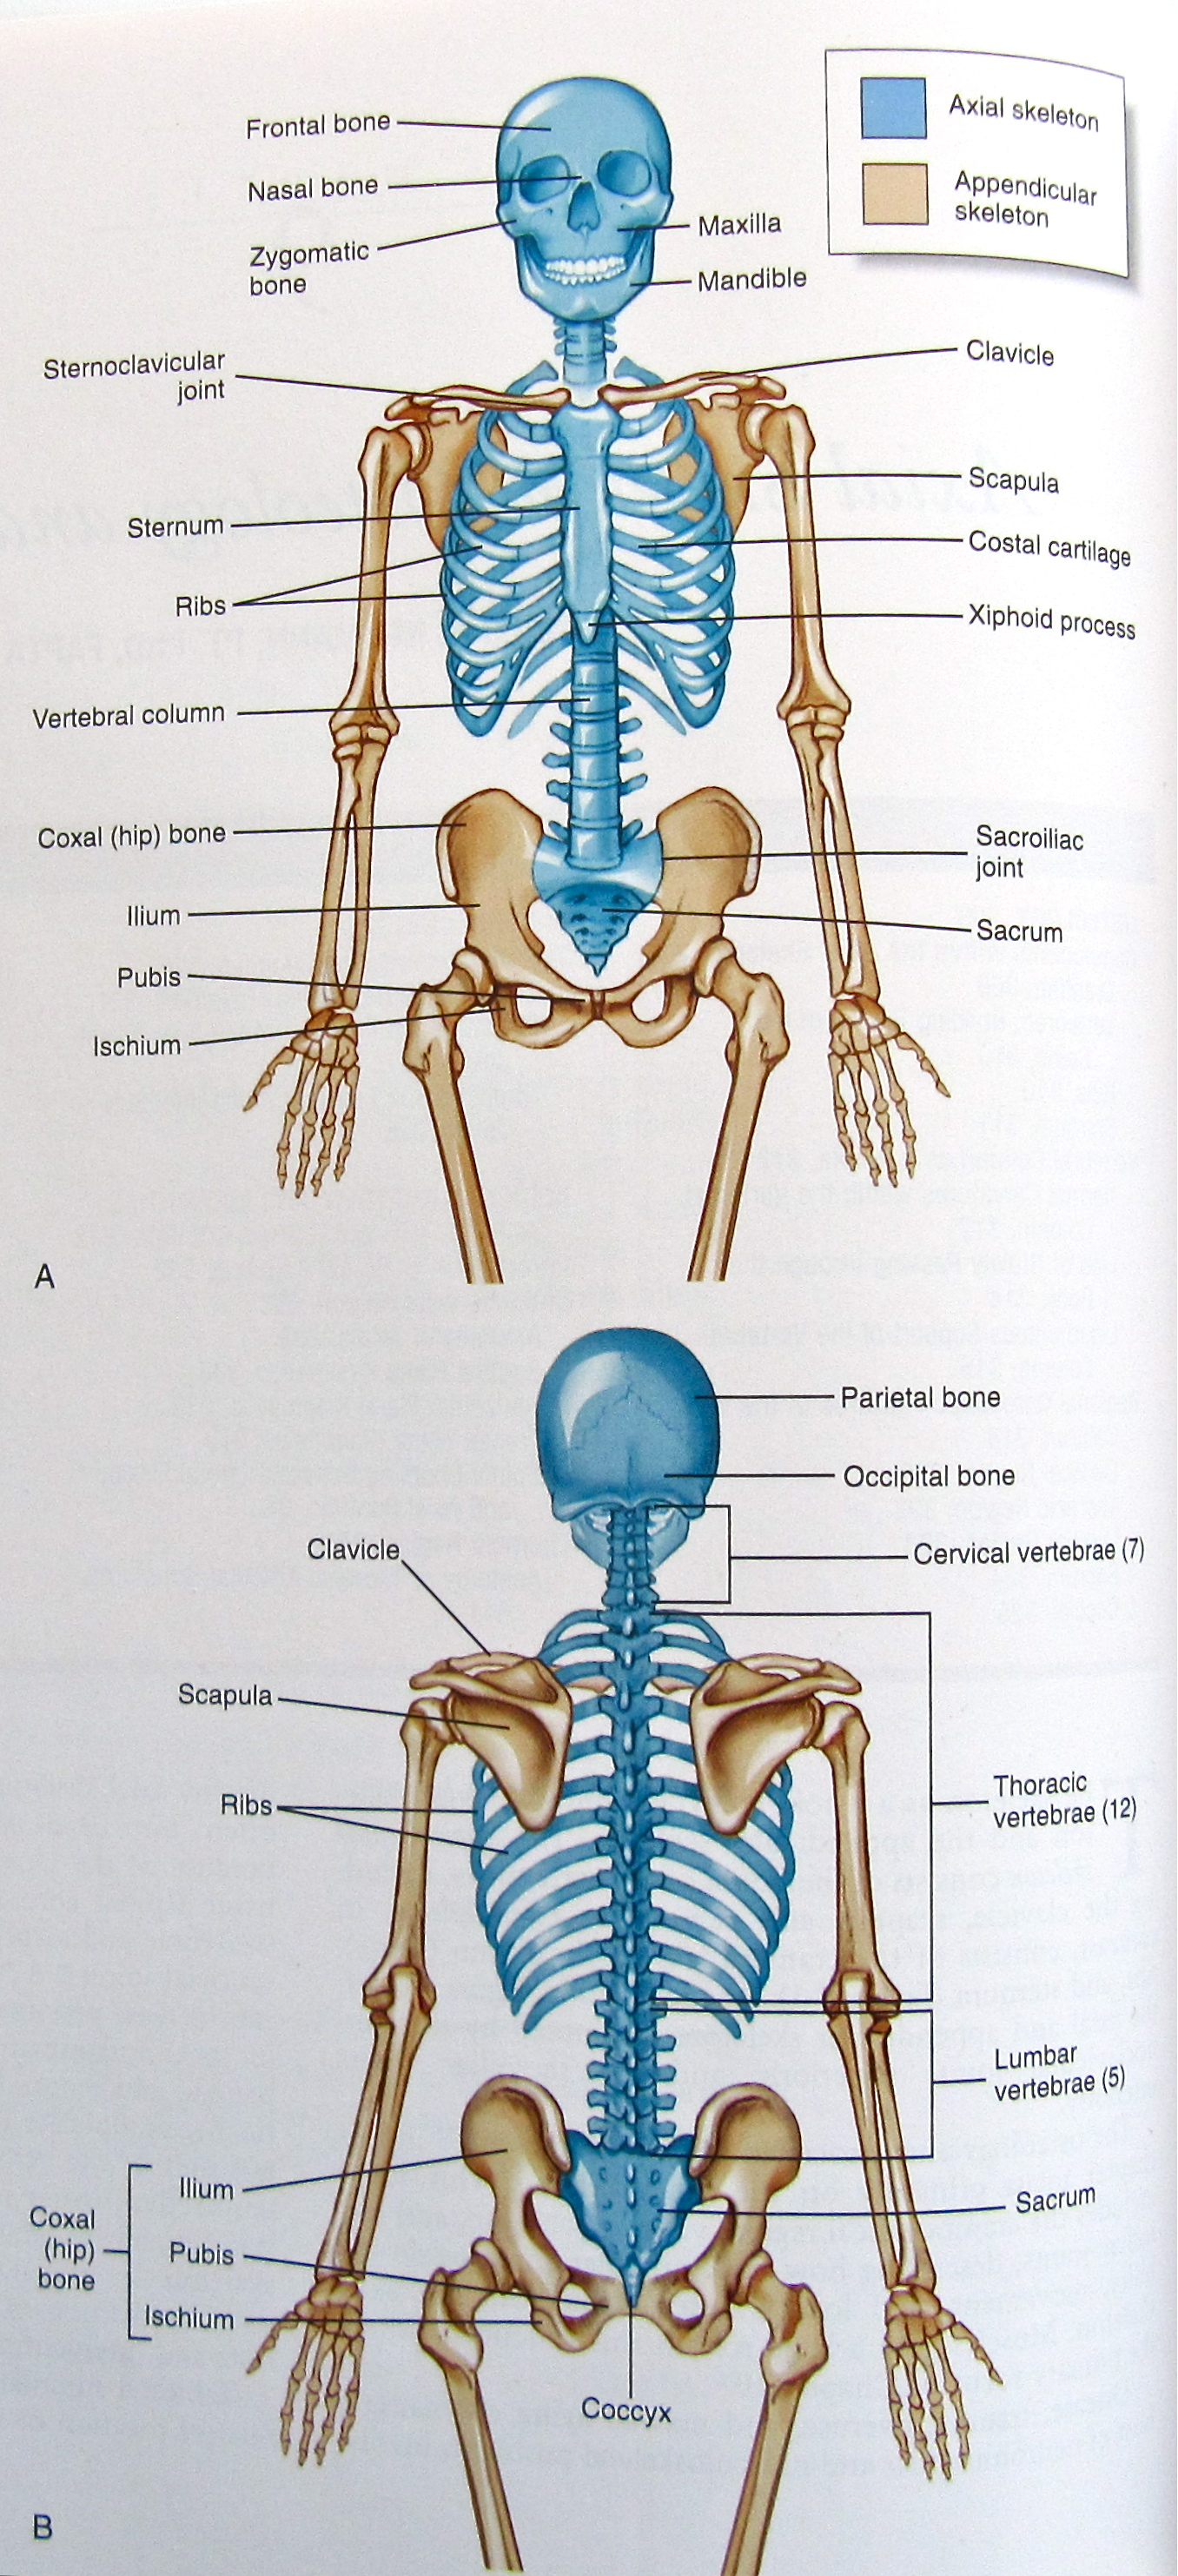 All the functionality connected with a Axial skeletal frame